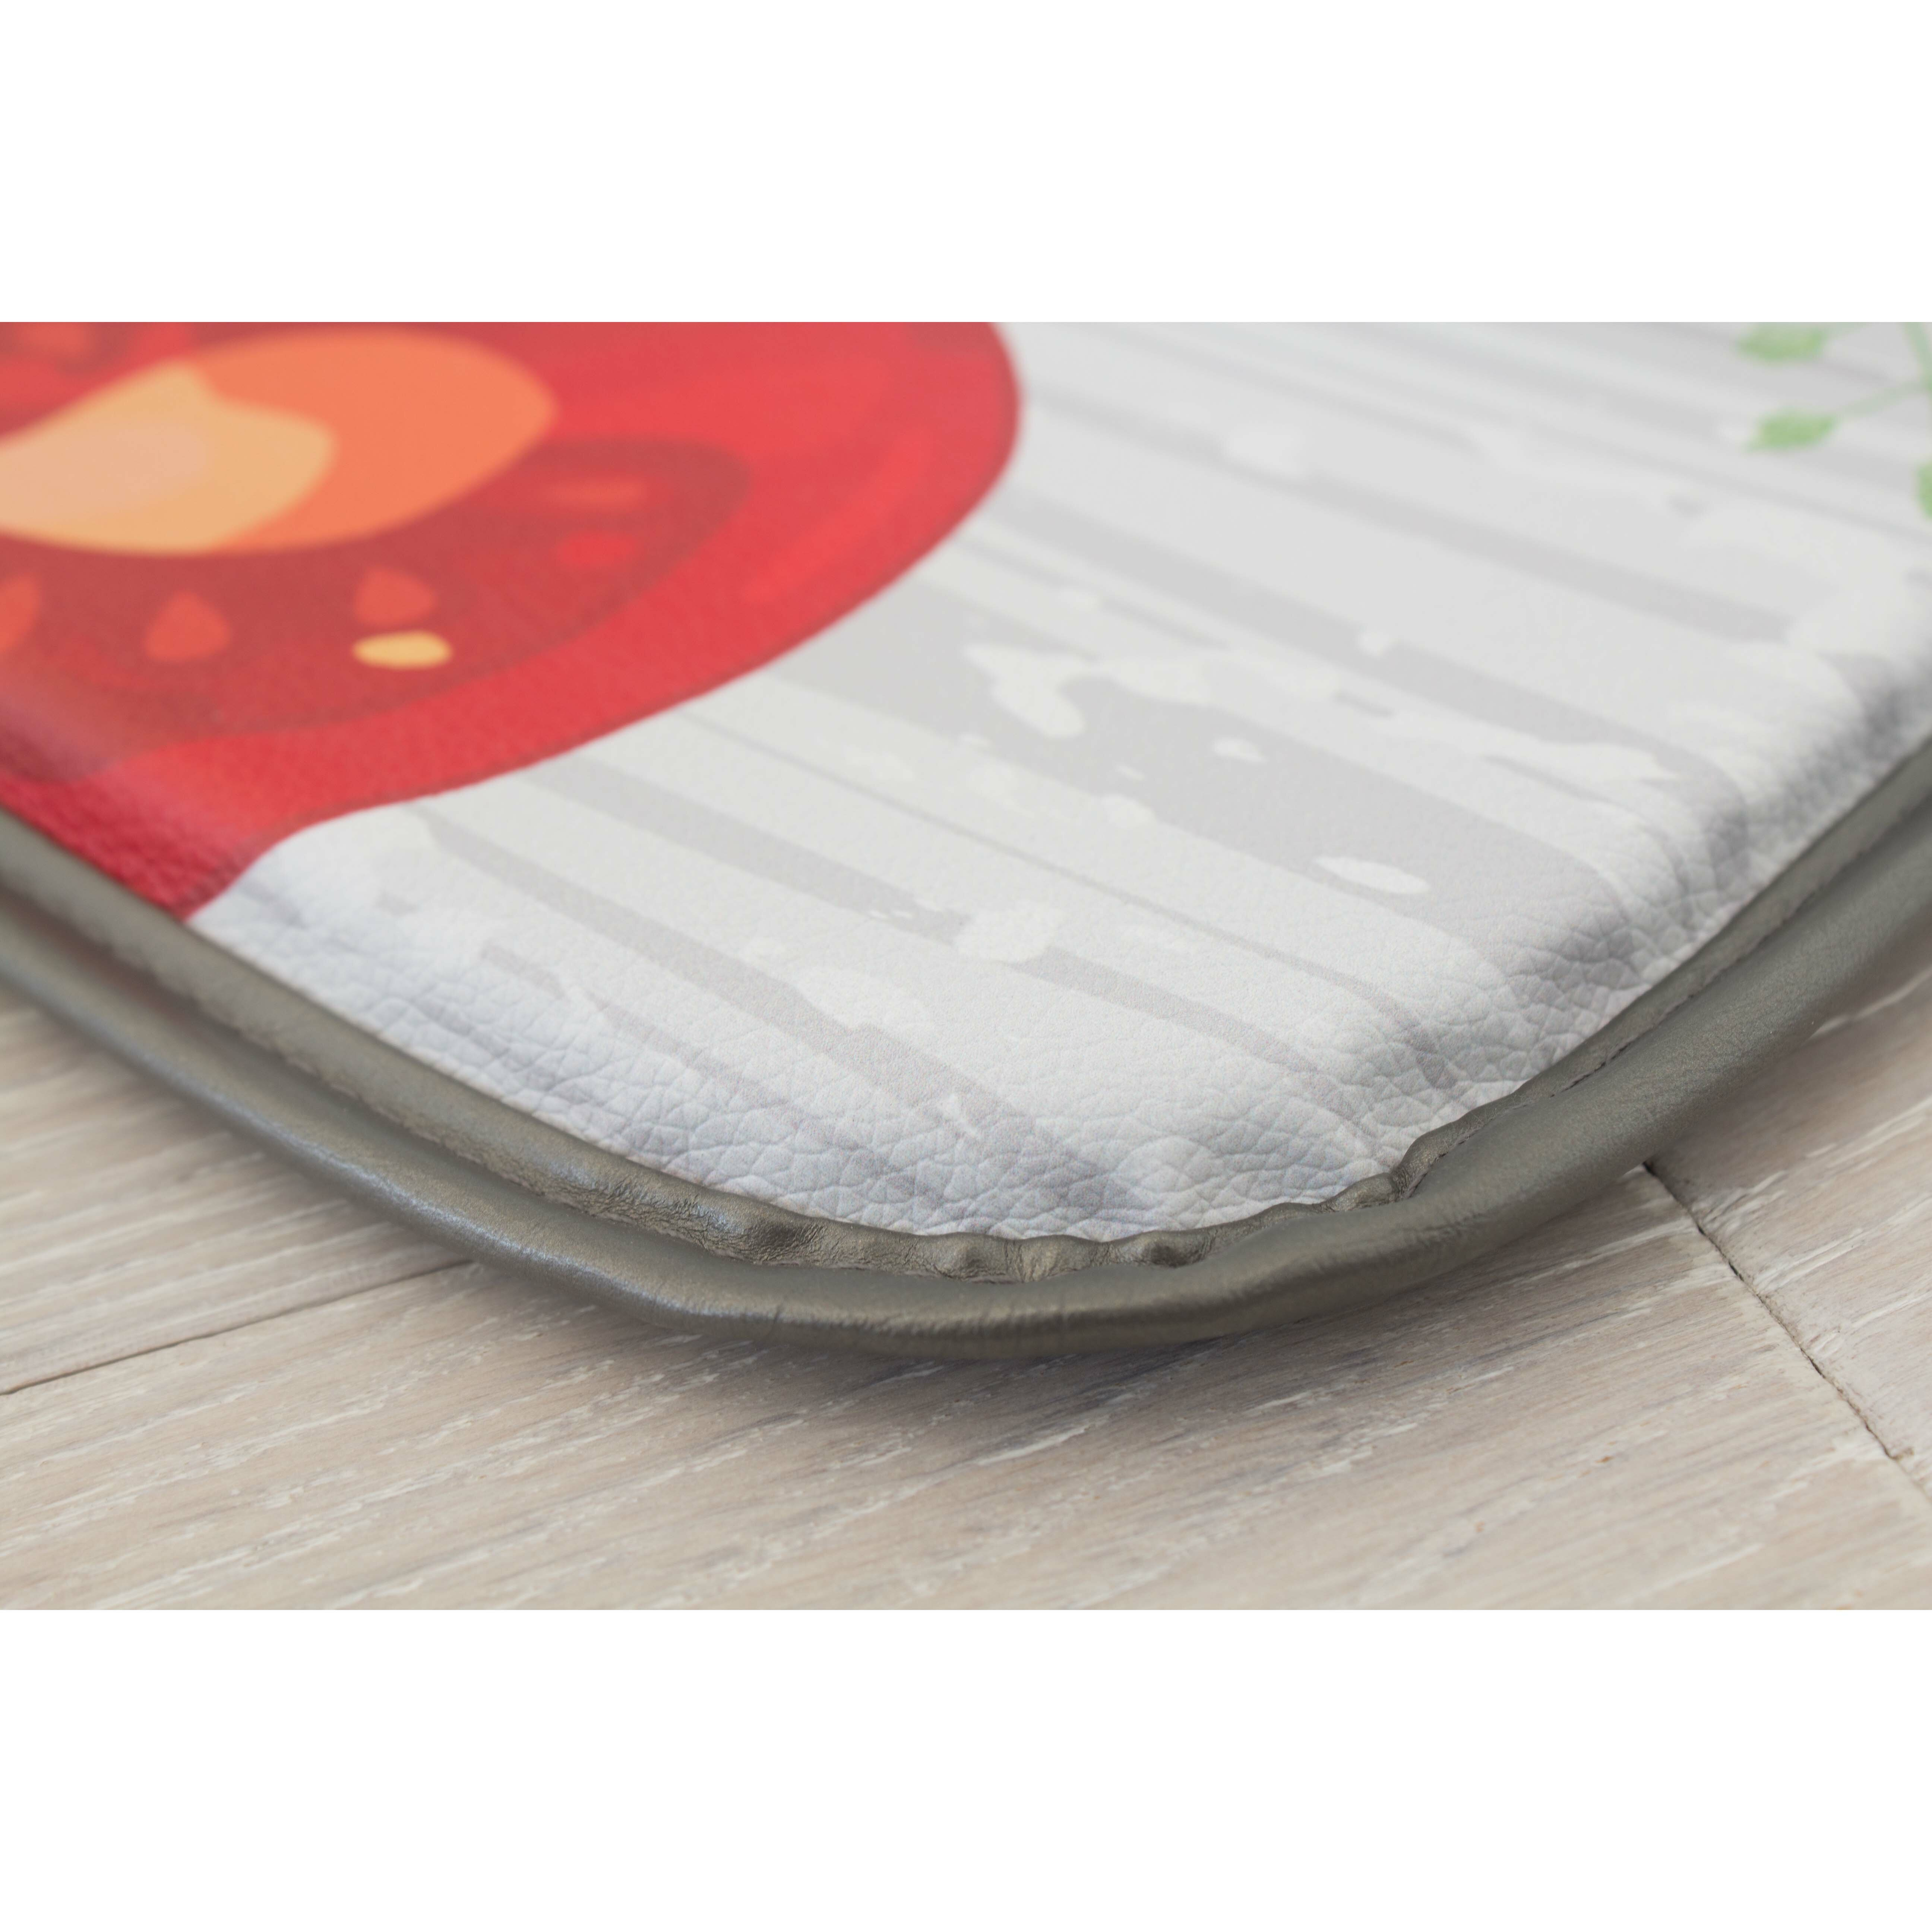 Chef Gear The Best People Anti Fatigue Kitchen Chef Mat